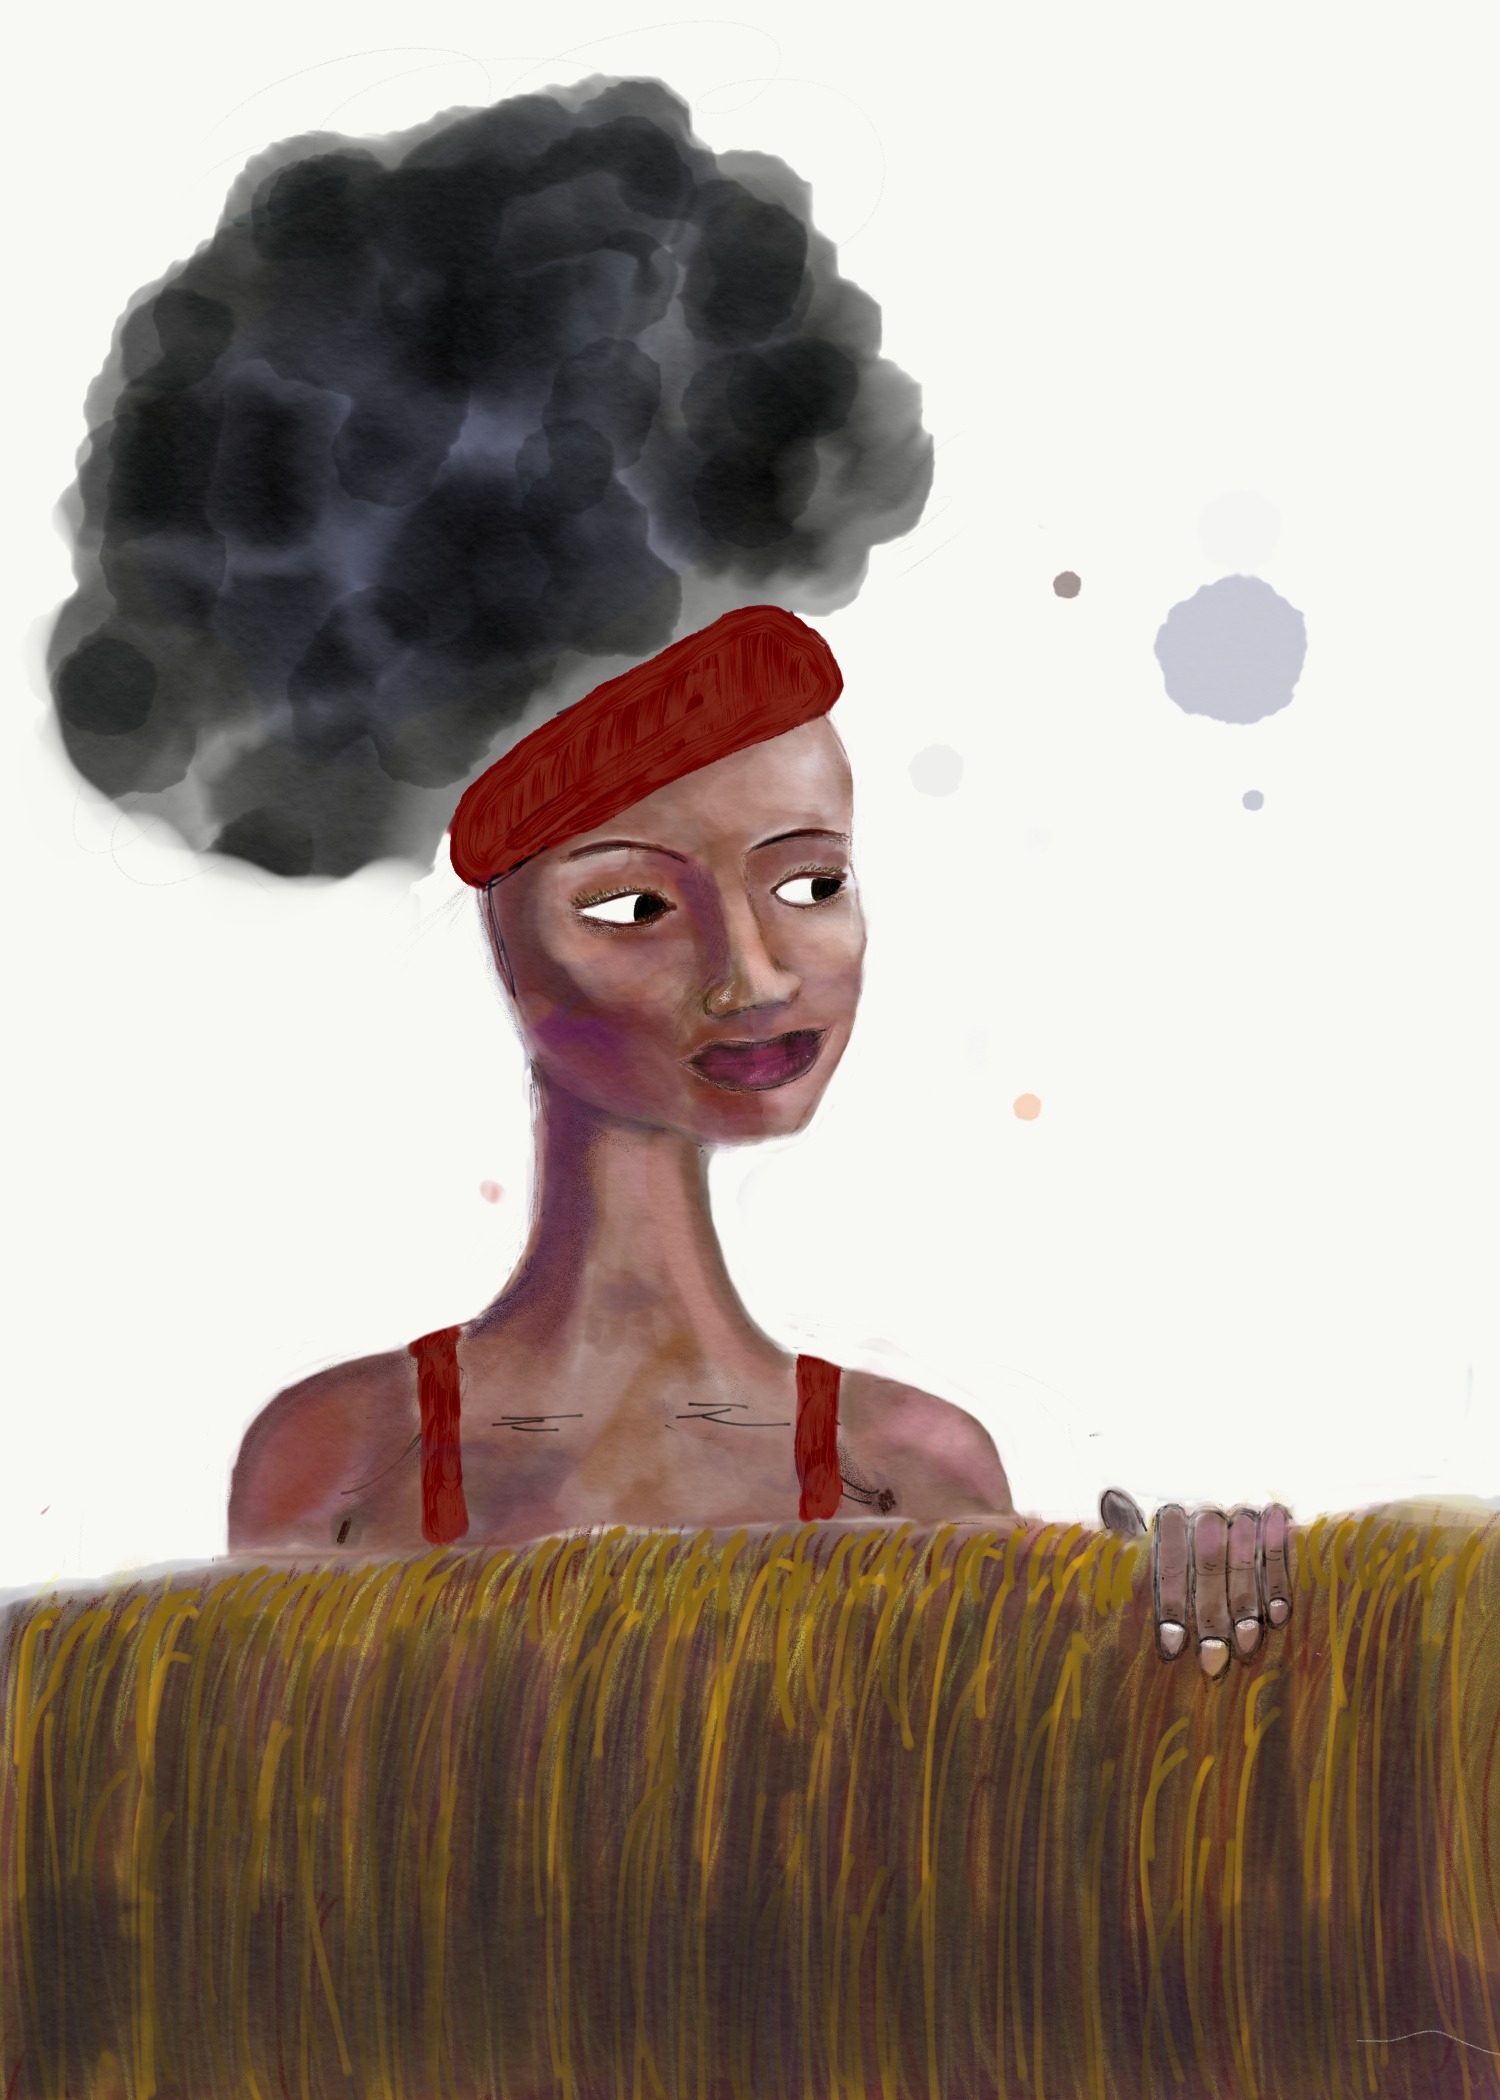 Digital painting of a woman looking over a wall